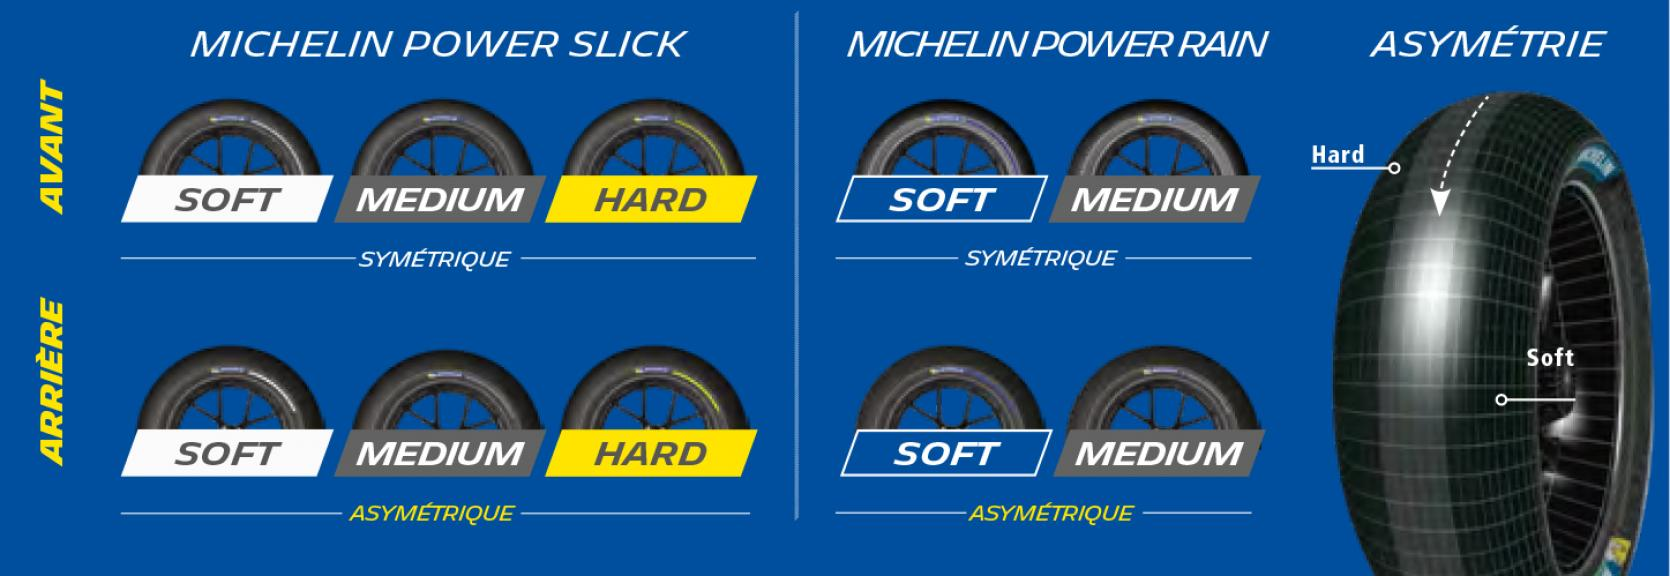 Michelin _FRENCH